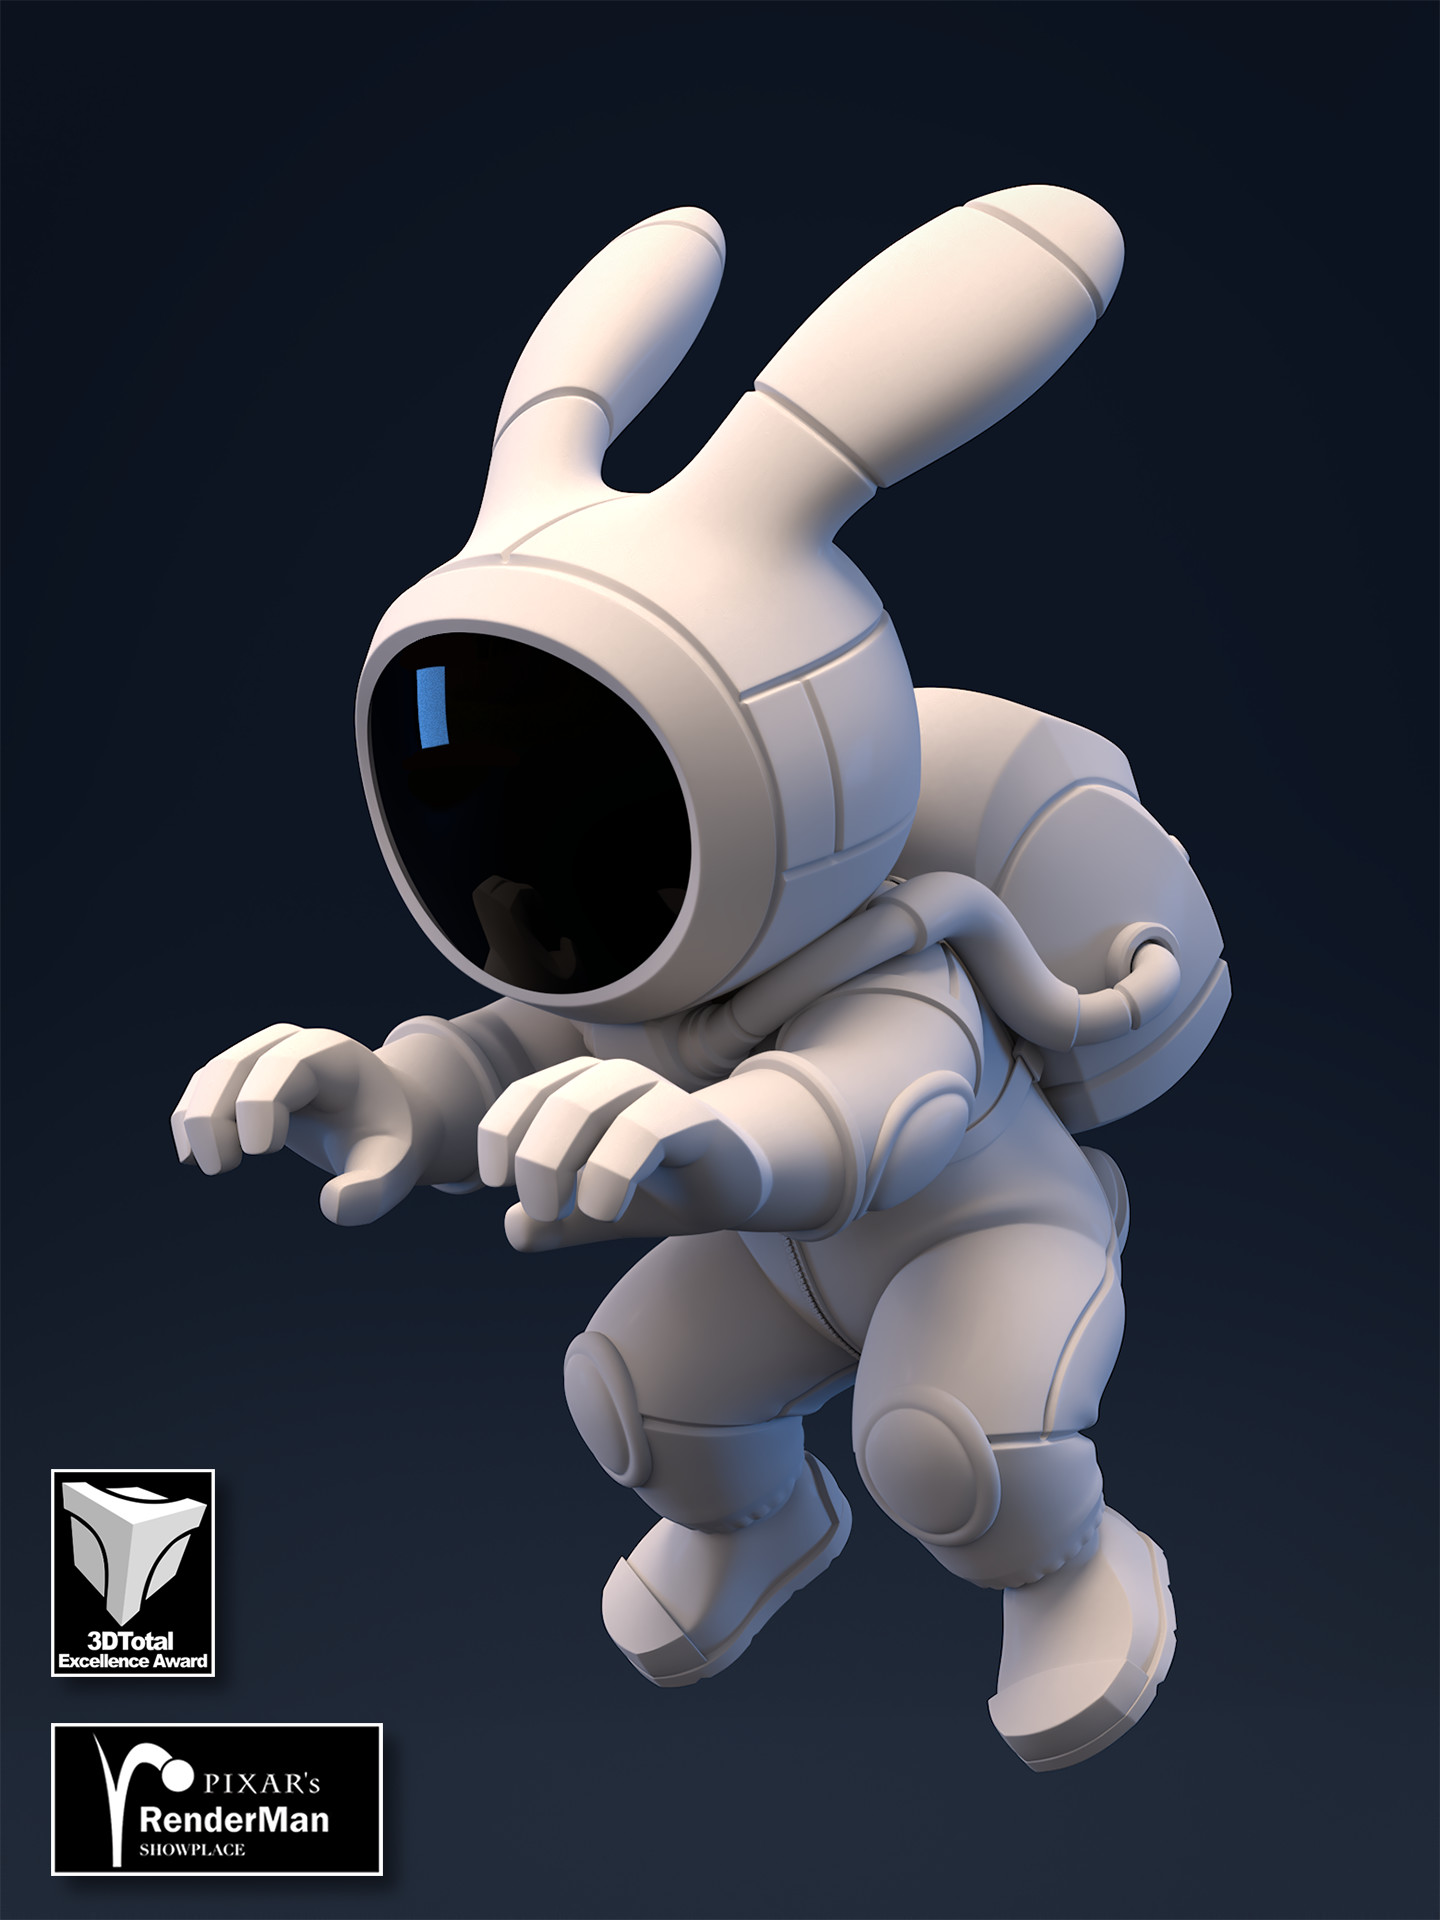 Brice laville saint martin rocket rabbit retopo awards 01